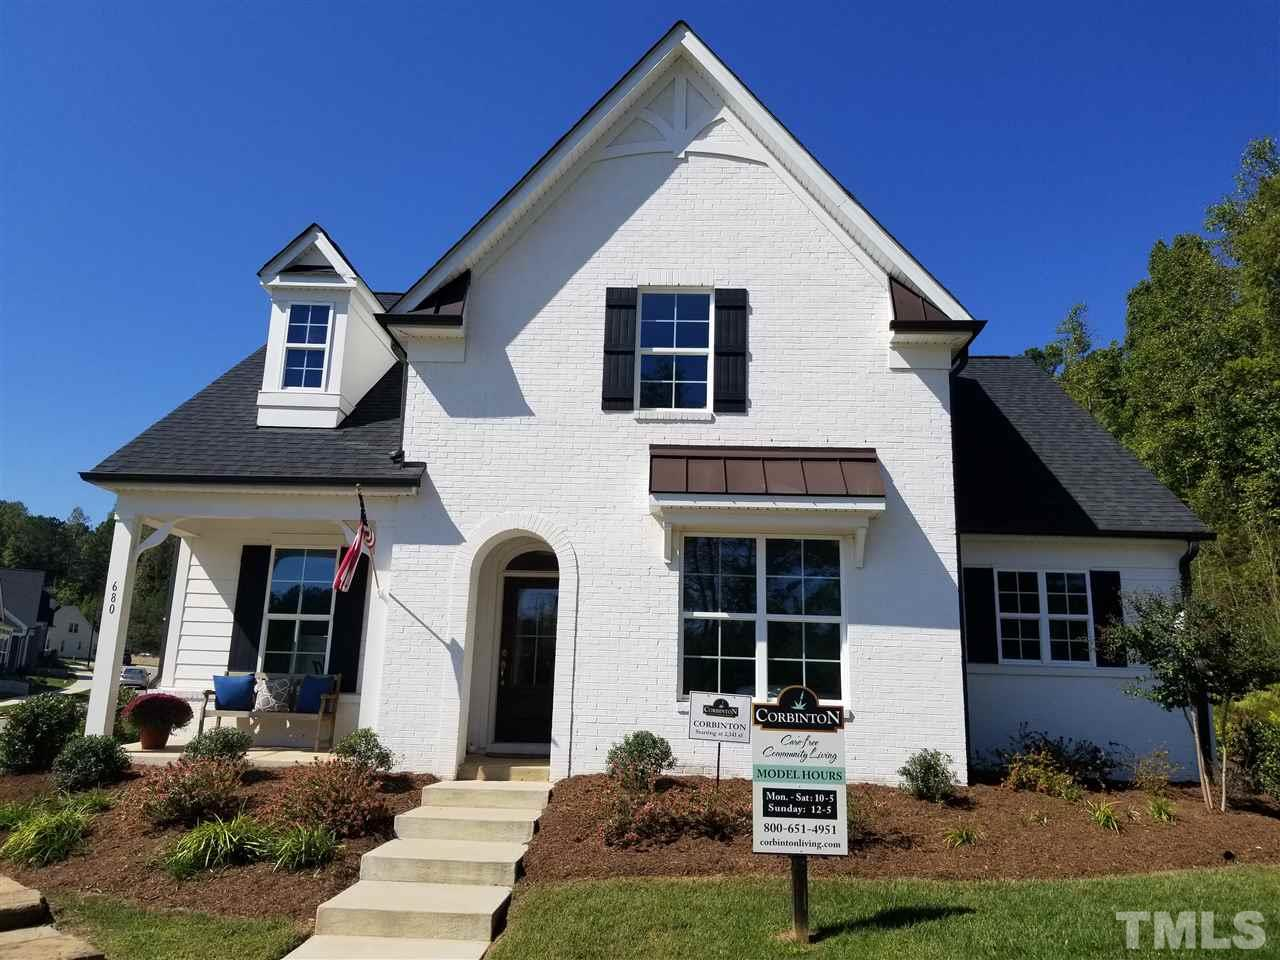 680 Market House Way, Hillsborough, NC